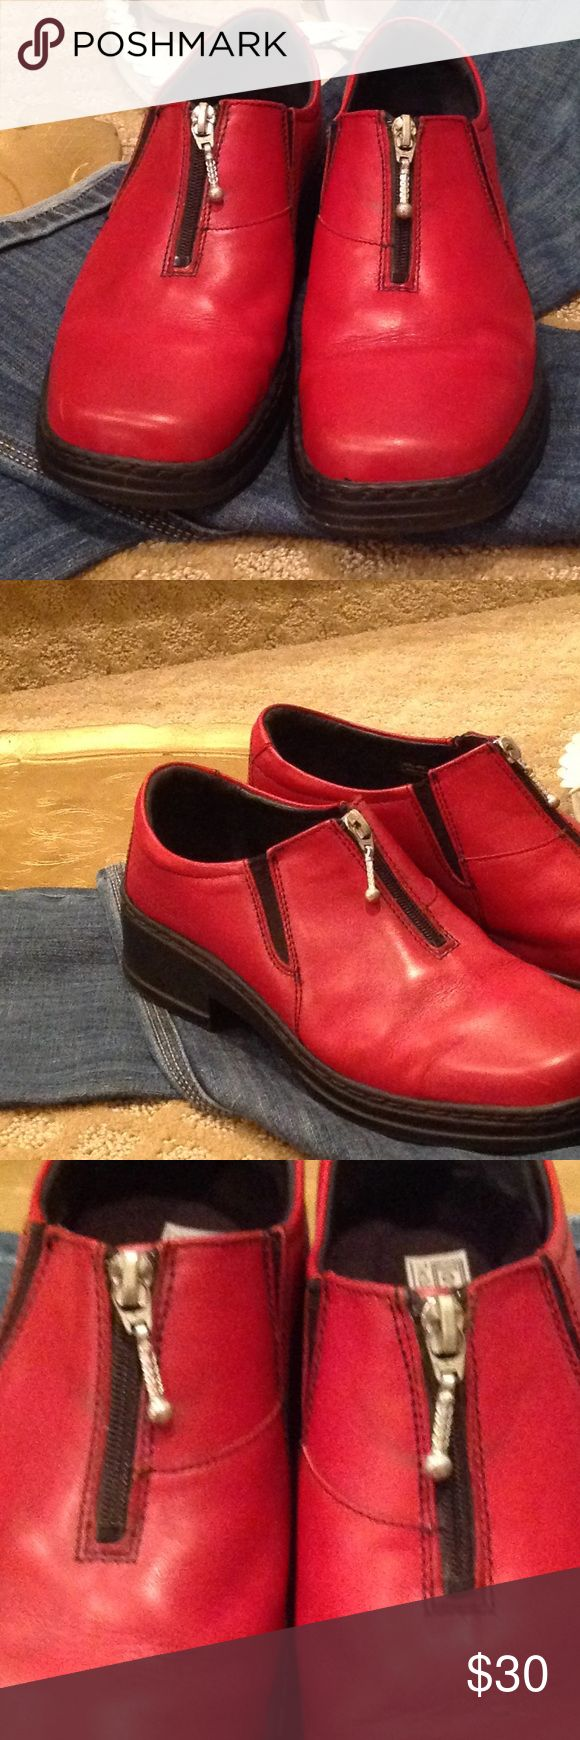 JOSEF SEIBEL RED LADIES SHOE GREAT WORN CONDITION ARE THESE JOSEF SEIBEL RED LEATHER SHOE. TOP ZIP. SOME MARKS WHERE ZIPPER MOVES.. SMALL SCRATCH ON FRONT, THESE SMALL BLEMISHES TAKE NOTHING AWAY FROM THE LOOK AND GREAT STYLE OF THIS SHOE😍😍😍 Josef Seibel Shoes